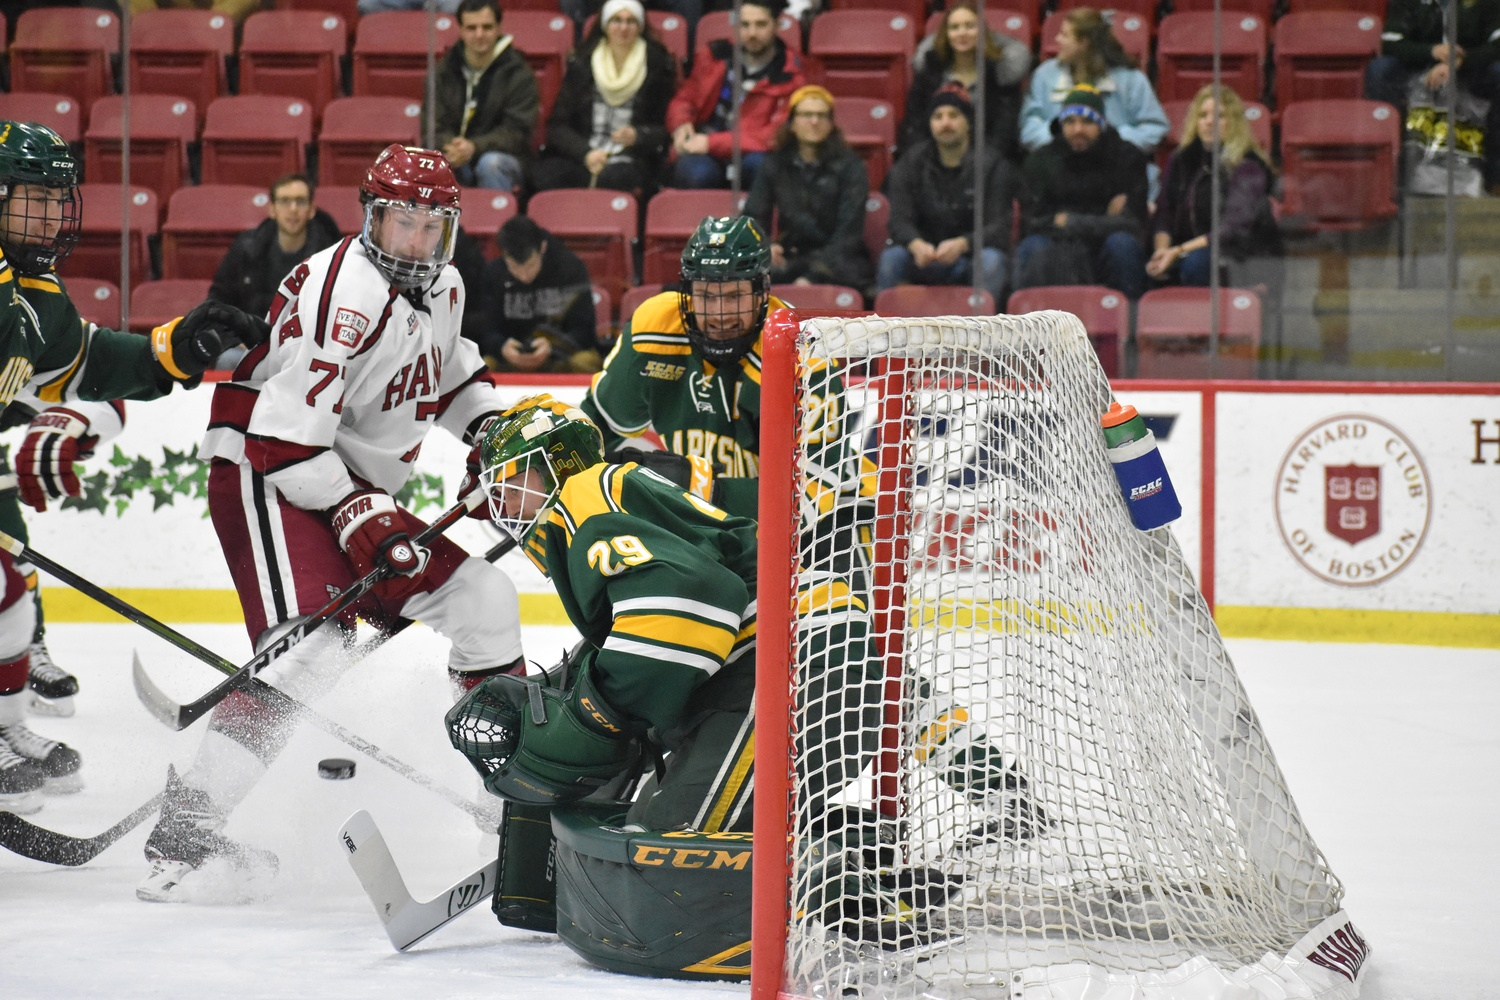 Clarkson net-minder Jake Kielly faced 41 shots in 62 minutes of play, turning away 37 of them.